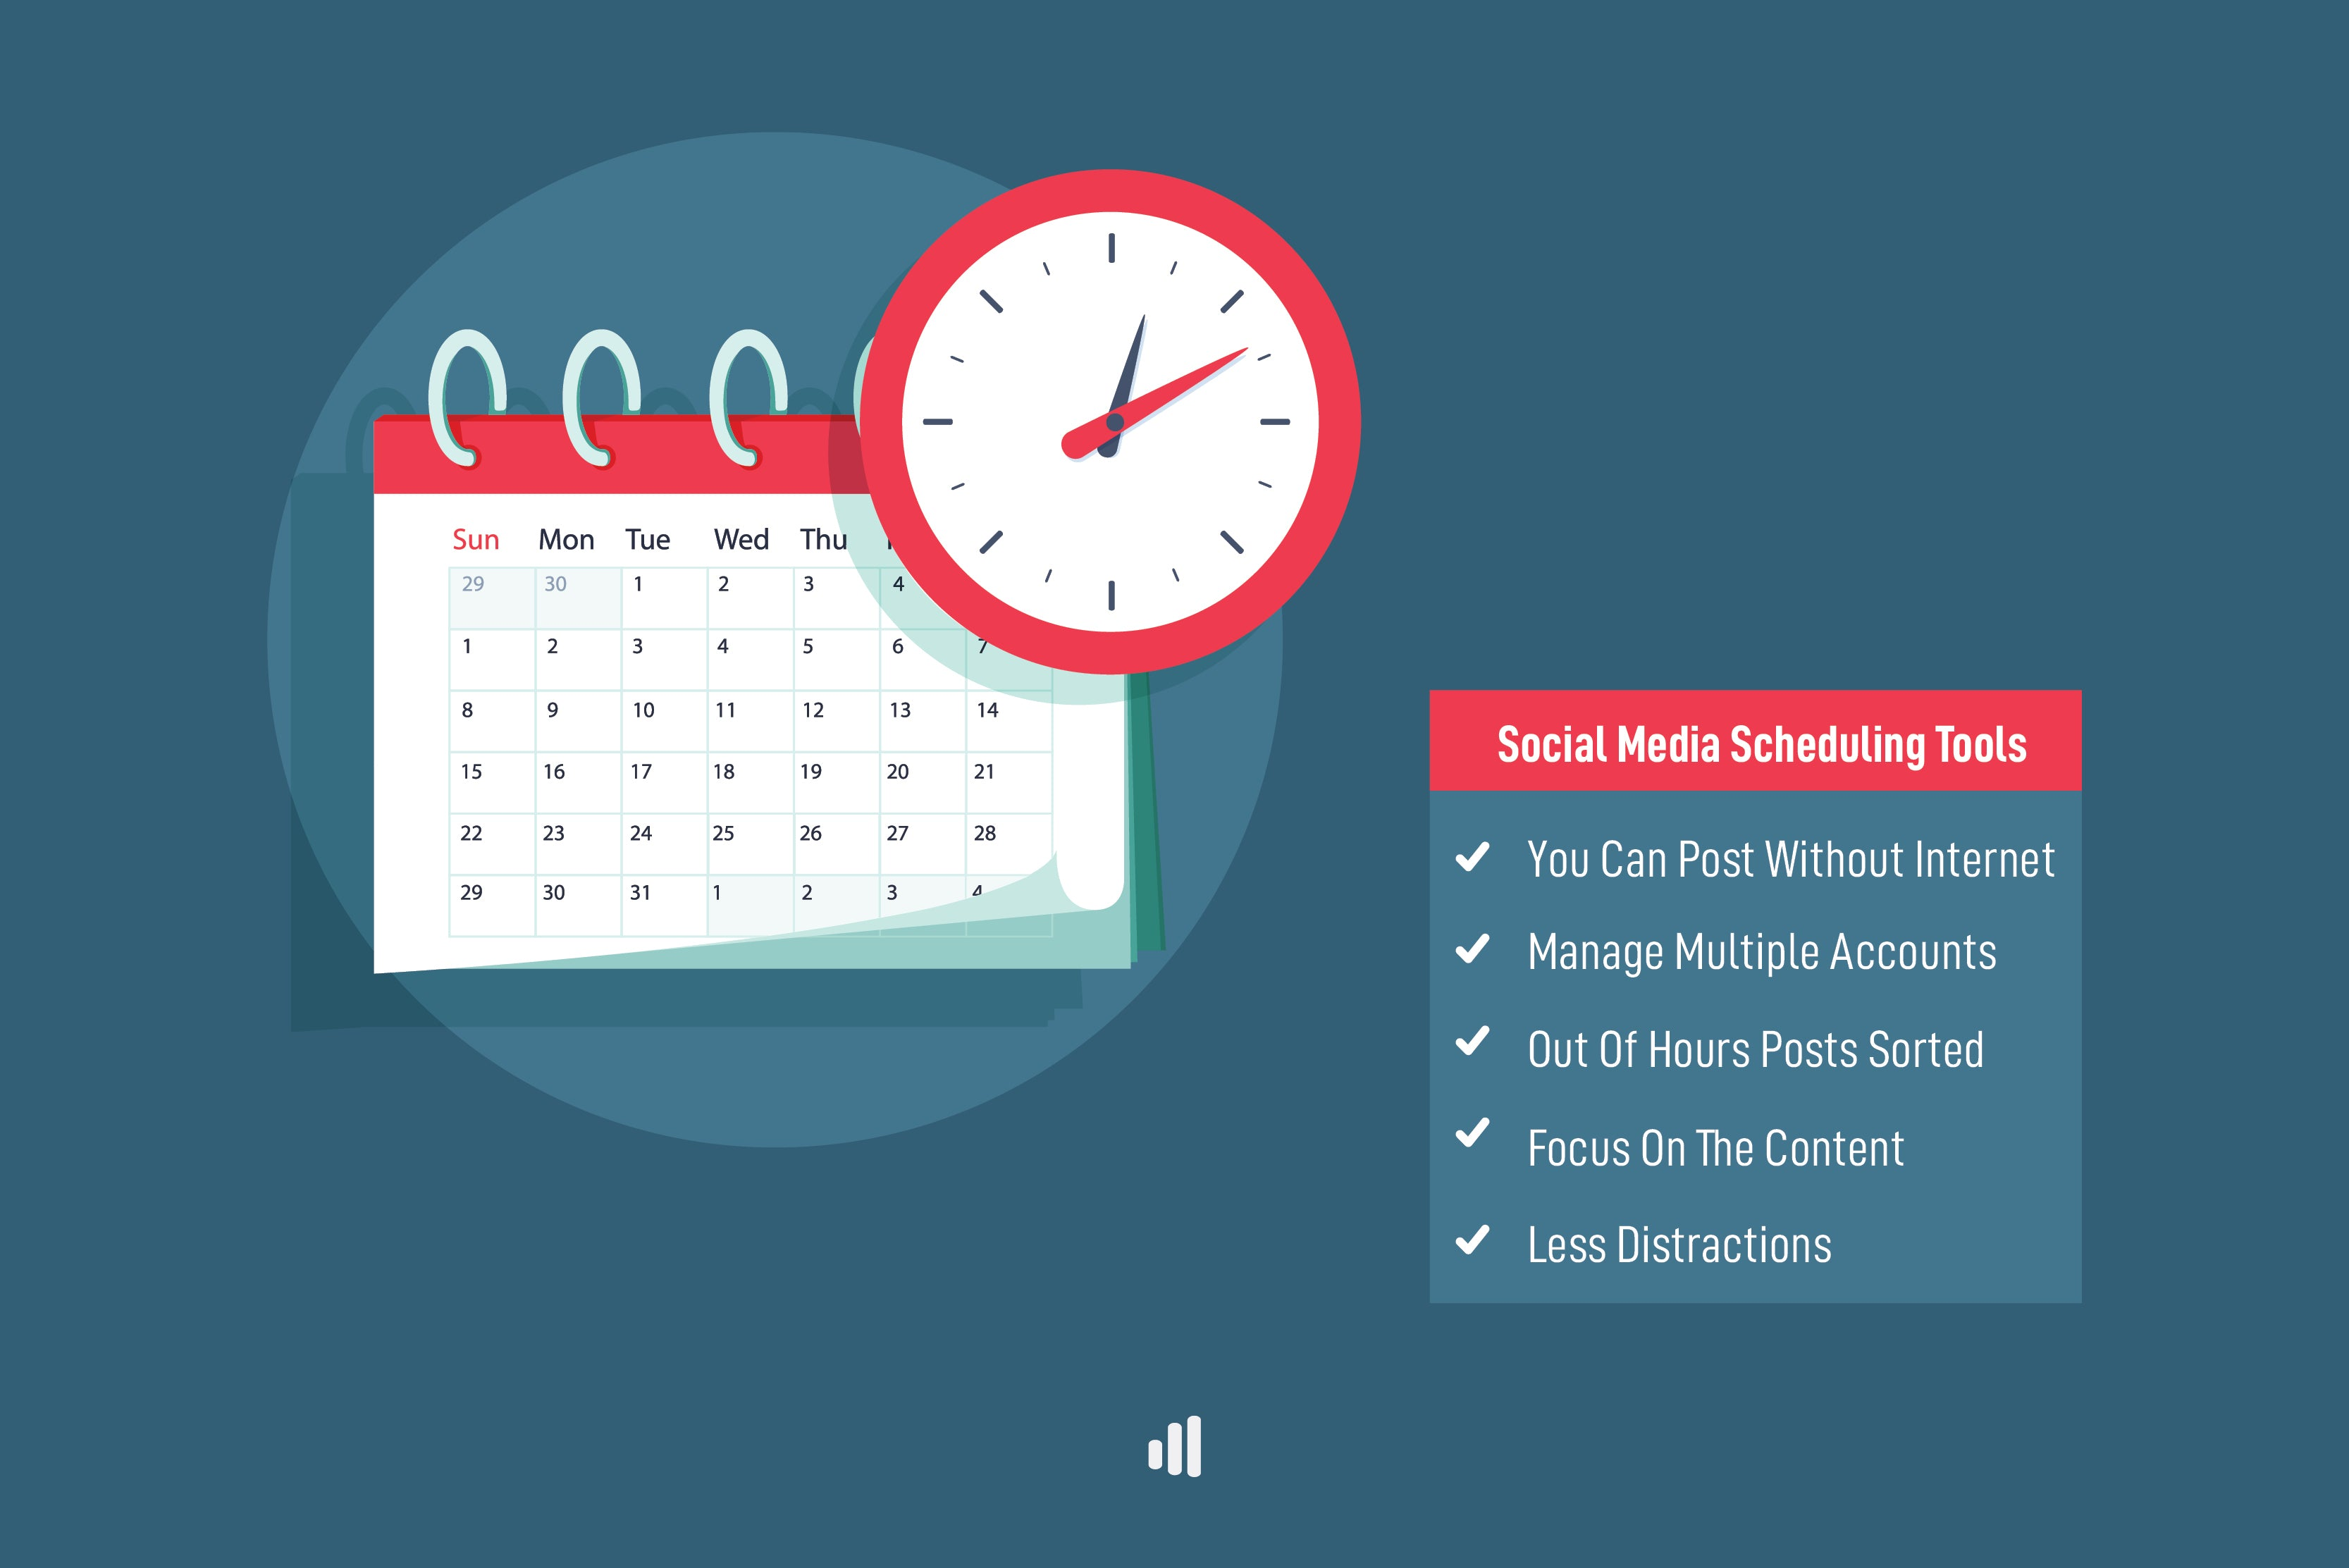 social-media-scheduling-tool-infographic